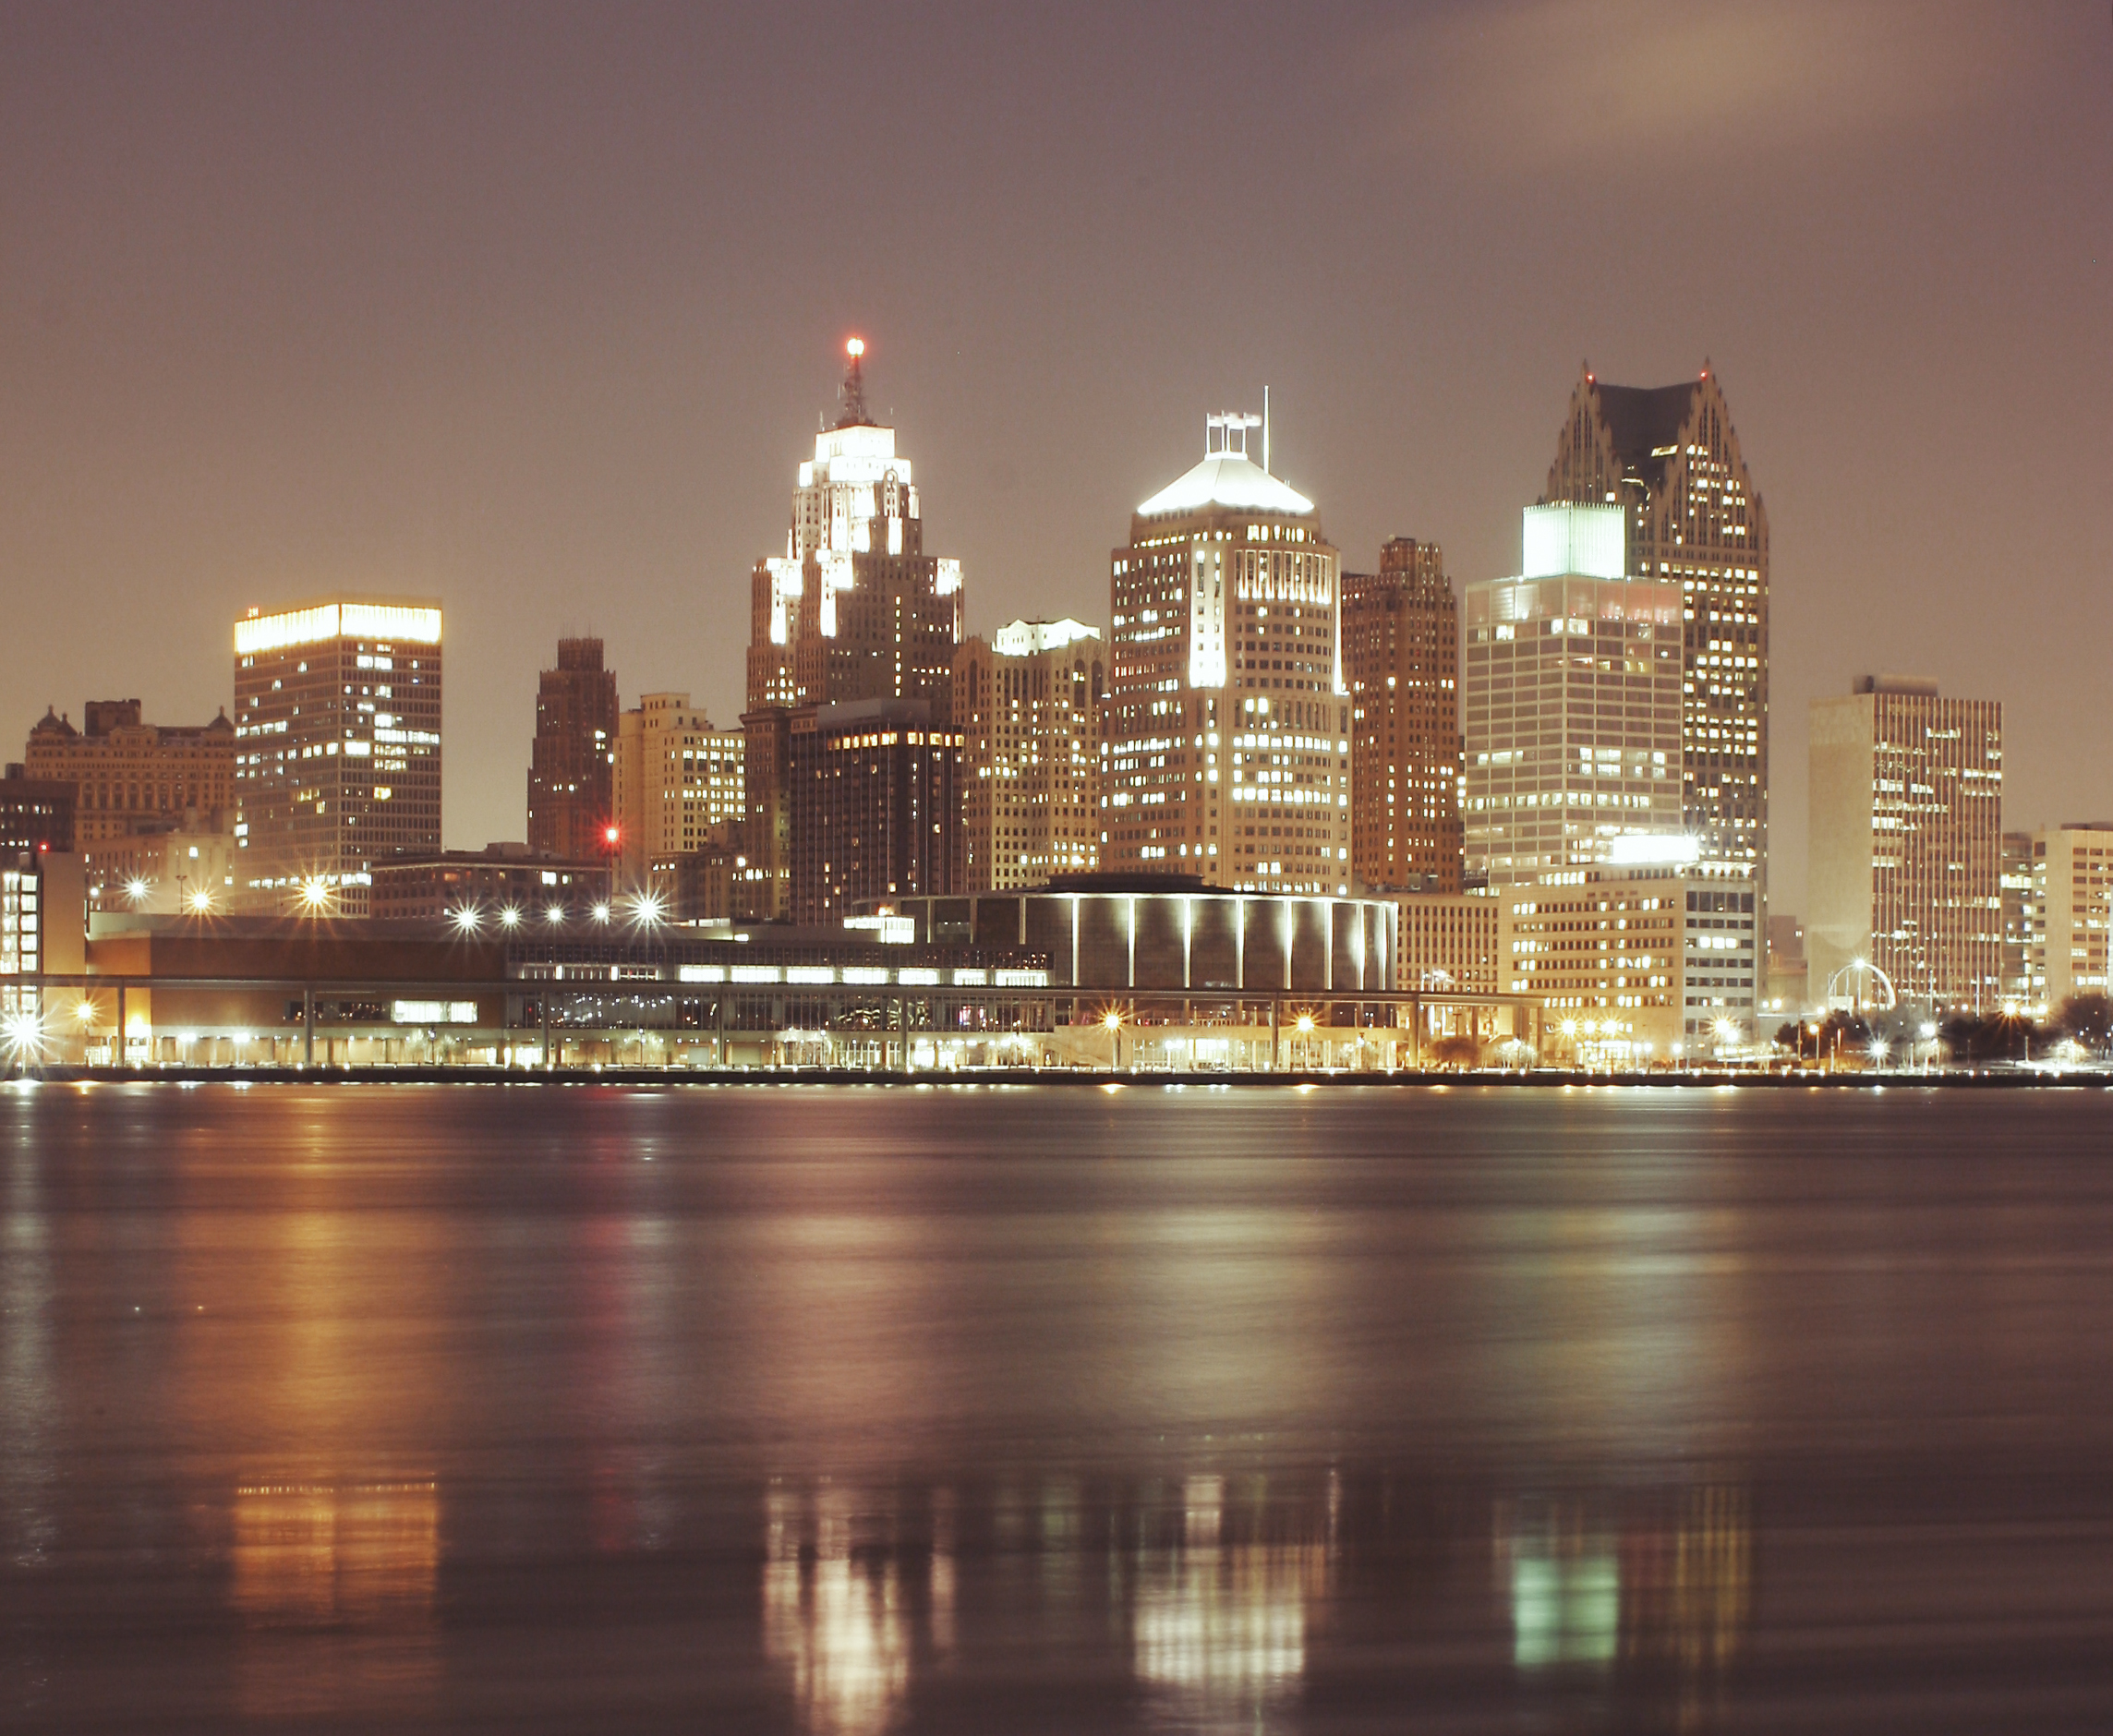 Dominion has office in metro-Detroit showing big buildings with lights on at night.